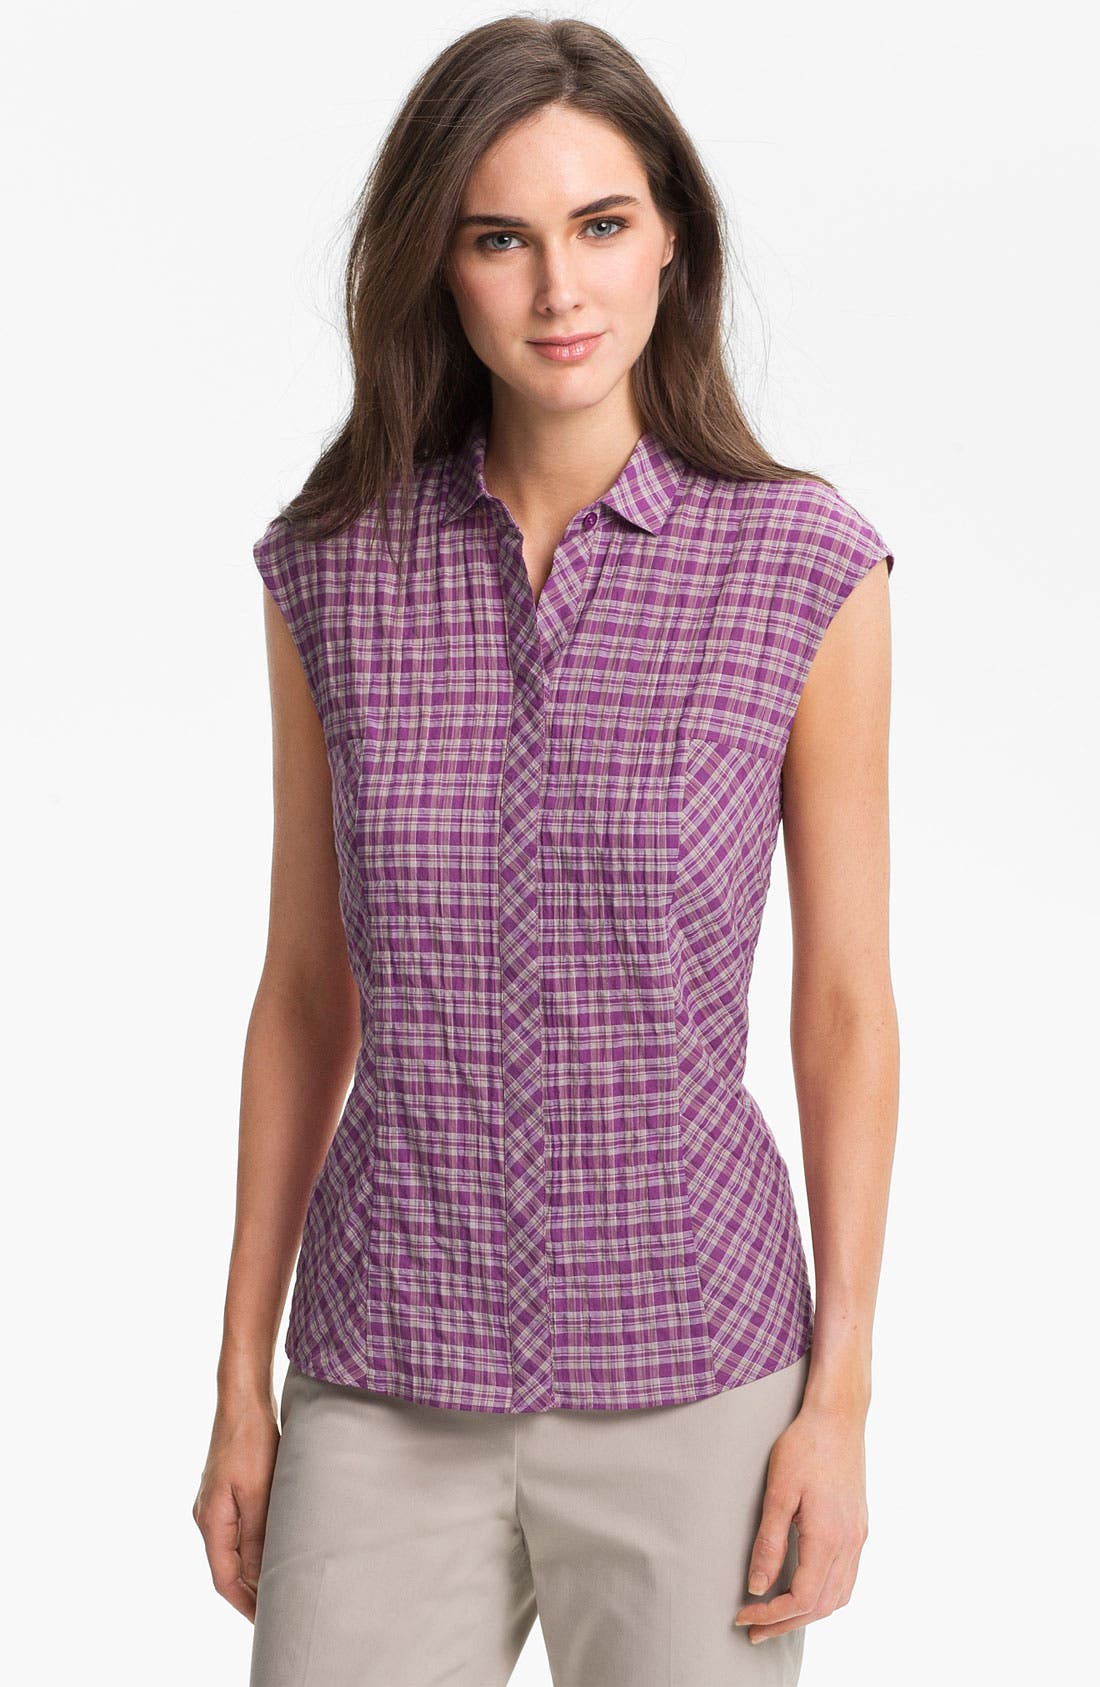 Alternate Image 1 Selected - Lafayette 148 New York Crinkled Plaid Blouse